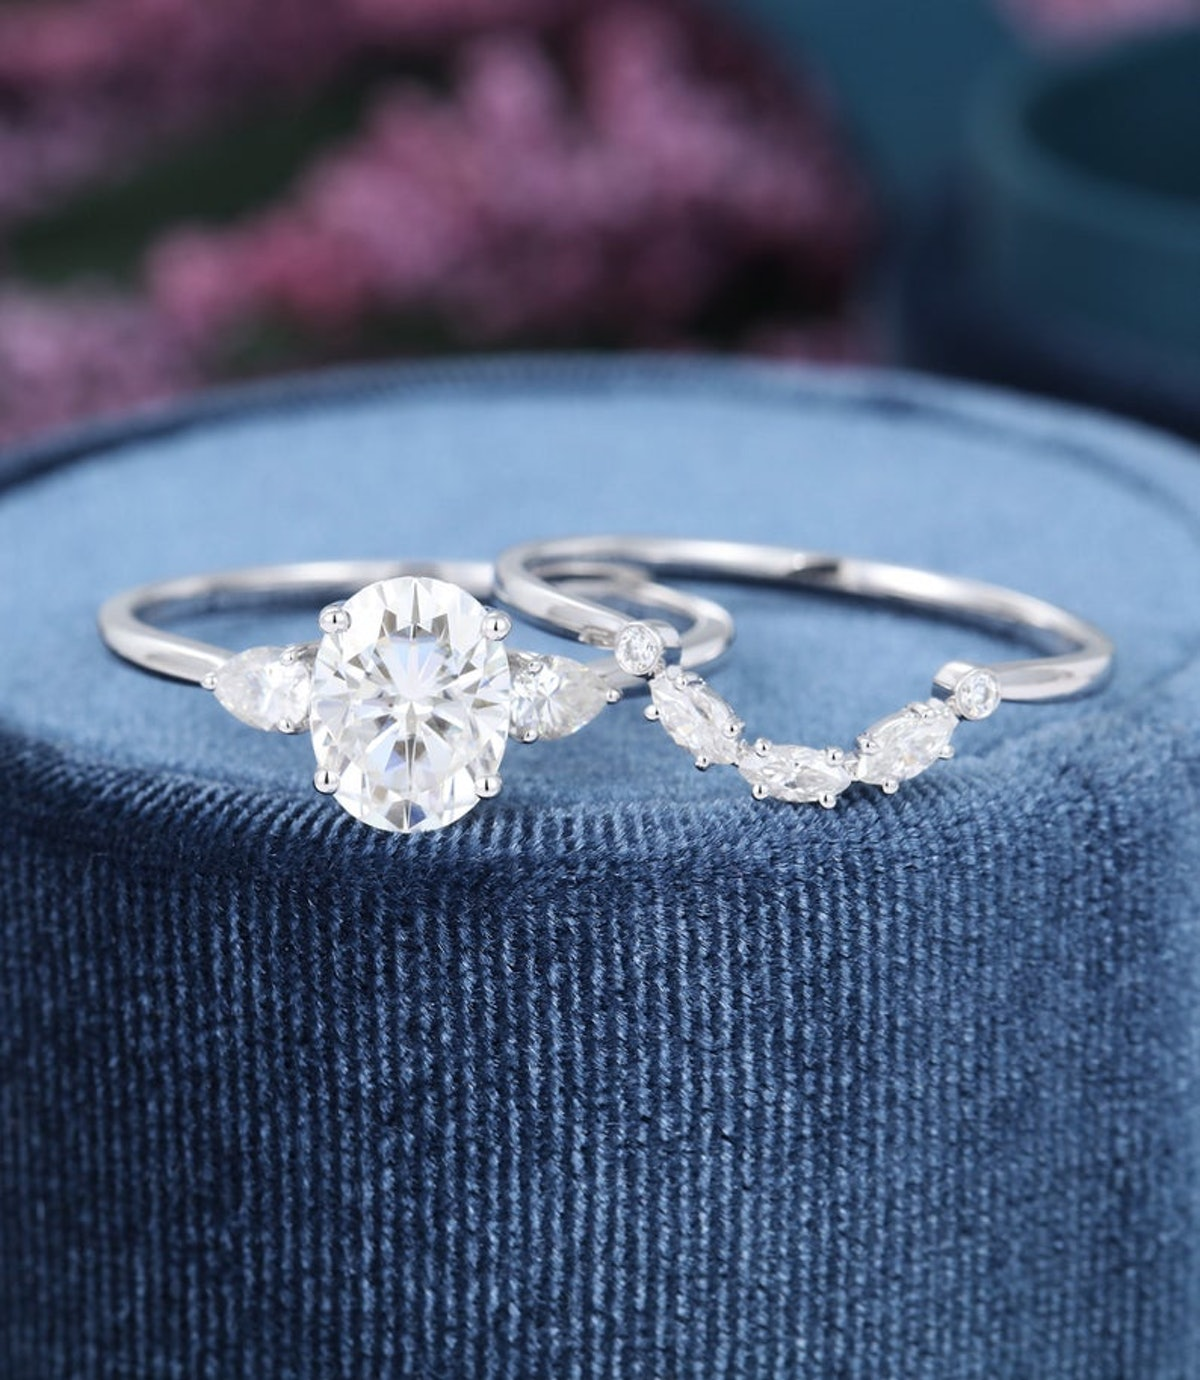 Oval Moissanite Engagement ring set vintage Art deco engagement ring white gold three stone Pear shaped wedding anniversary gift for women